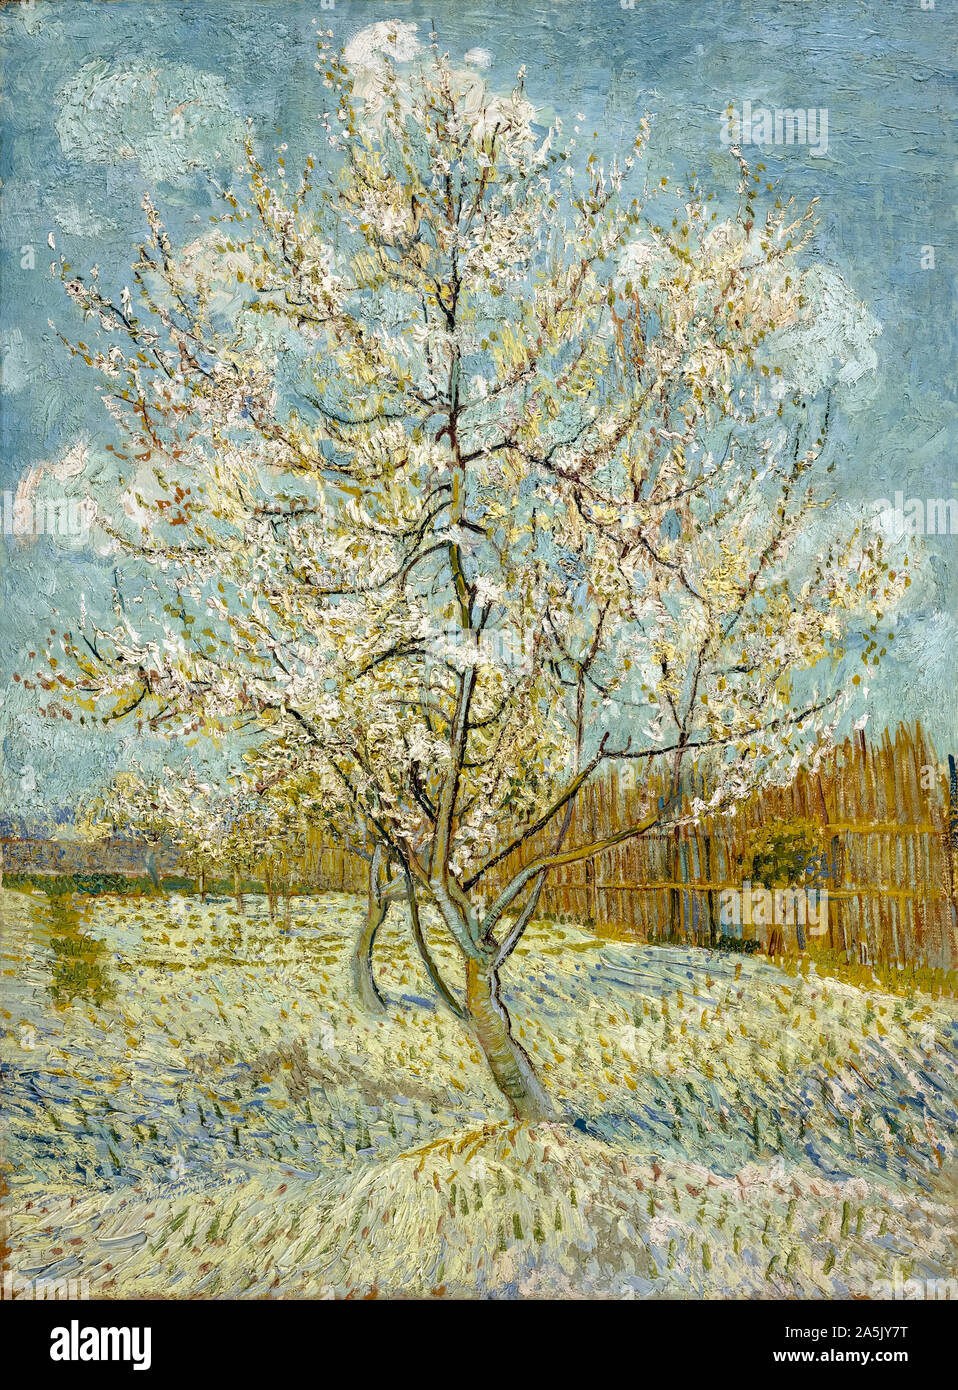 Vincent Van Gogh The Pink Peach Tree Painting 1888 Stock Photo Alamy